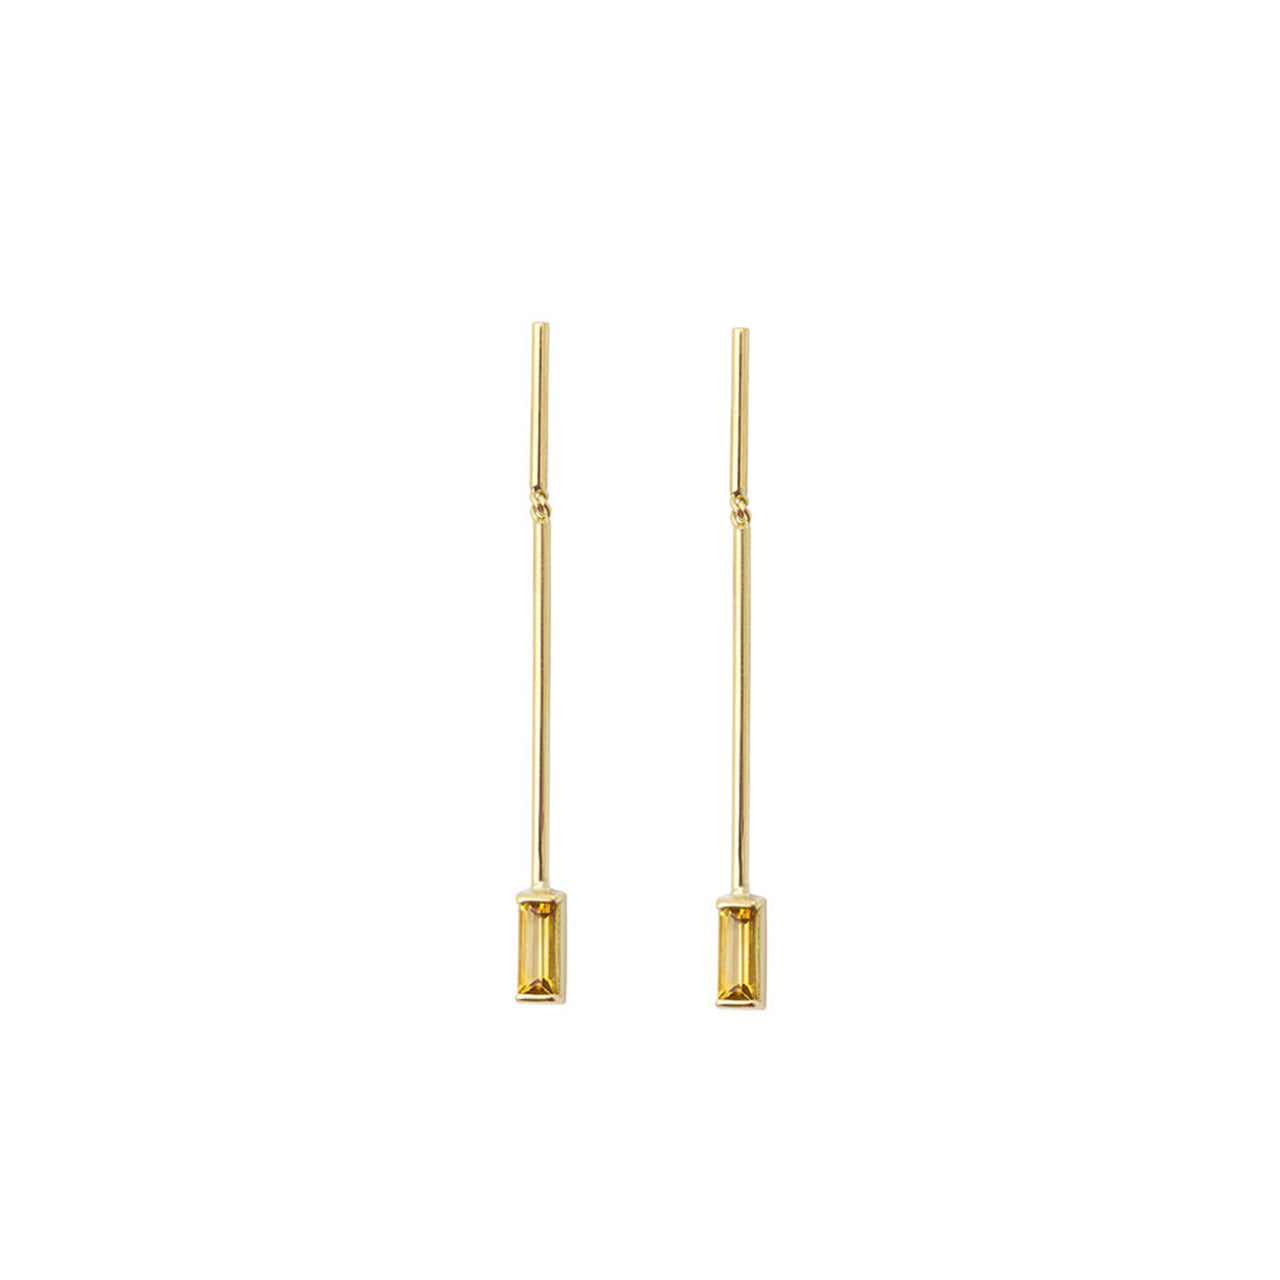 18-carat yellow gold elina earrings